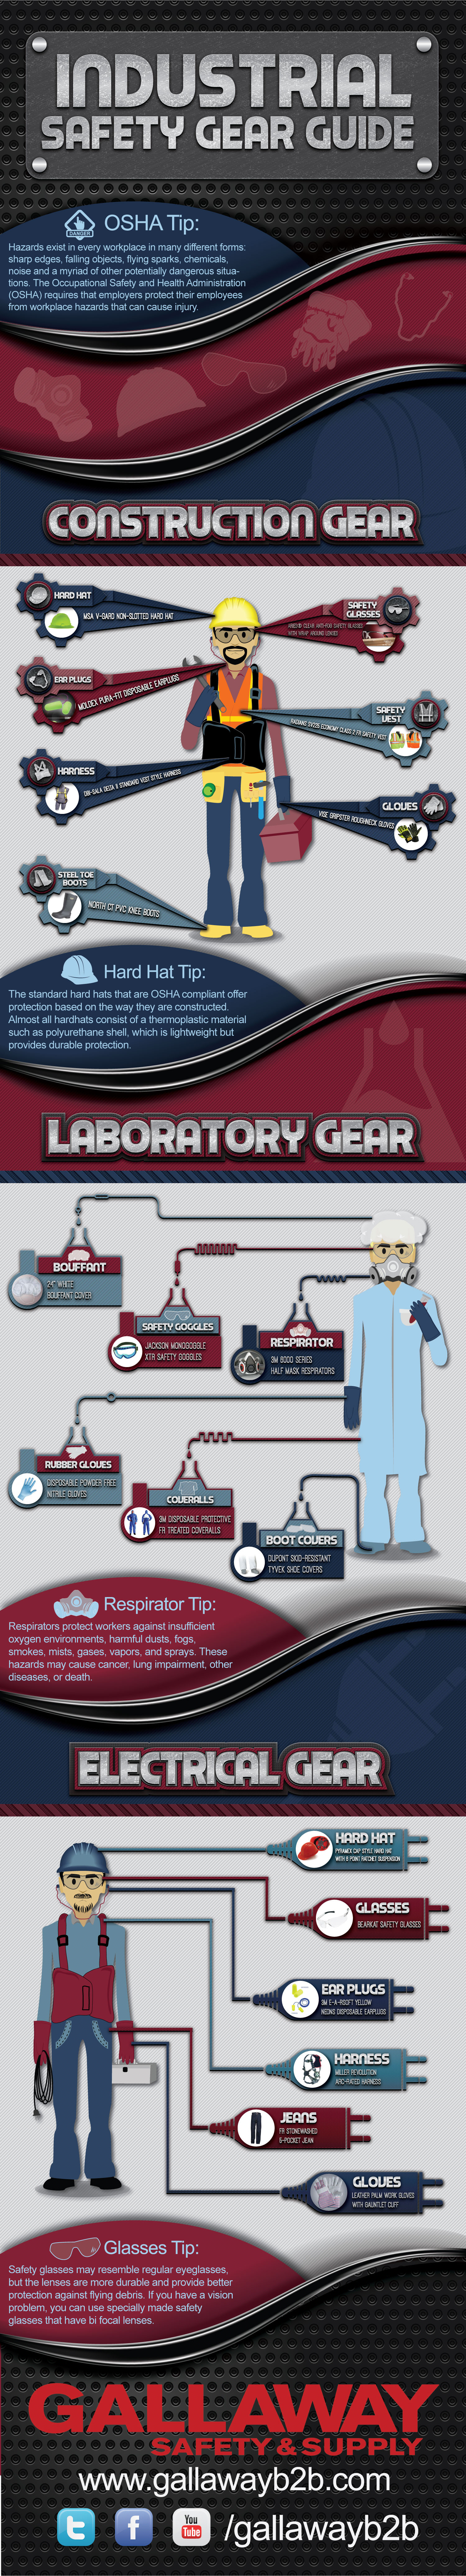 Industrial Safety Gear Guide Infographic